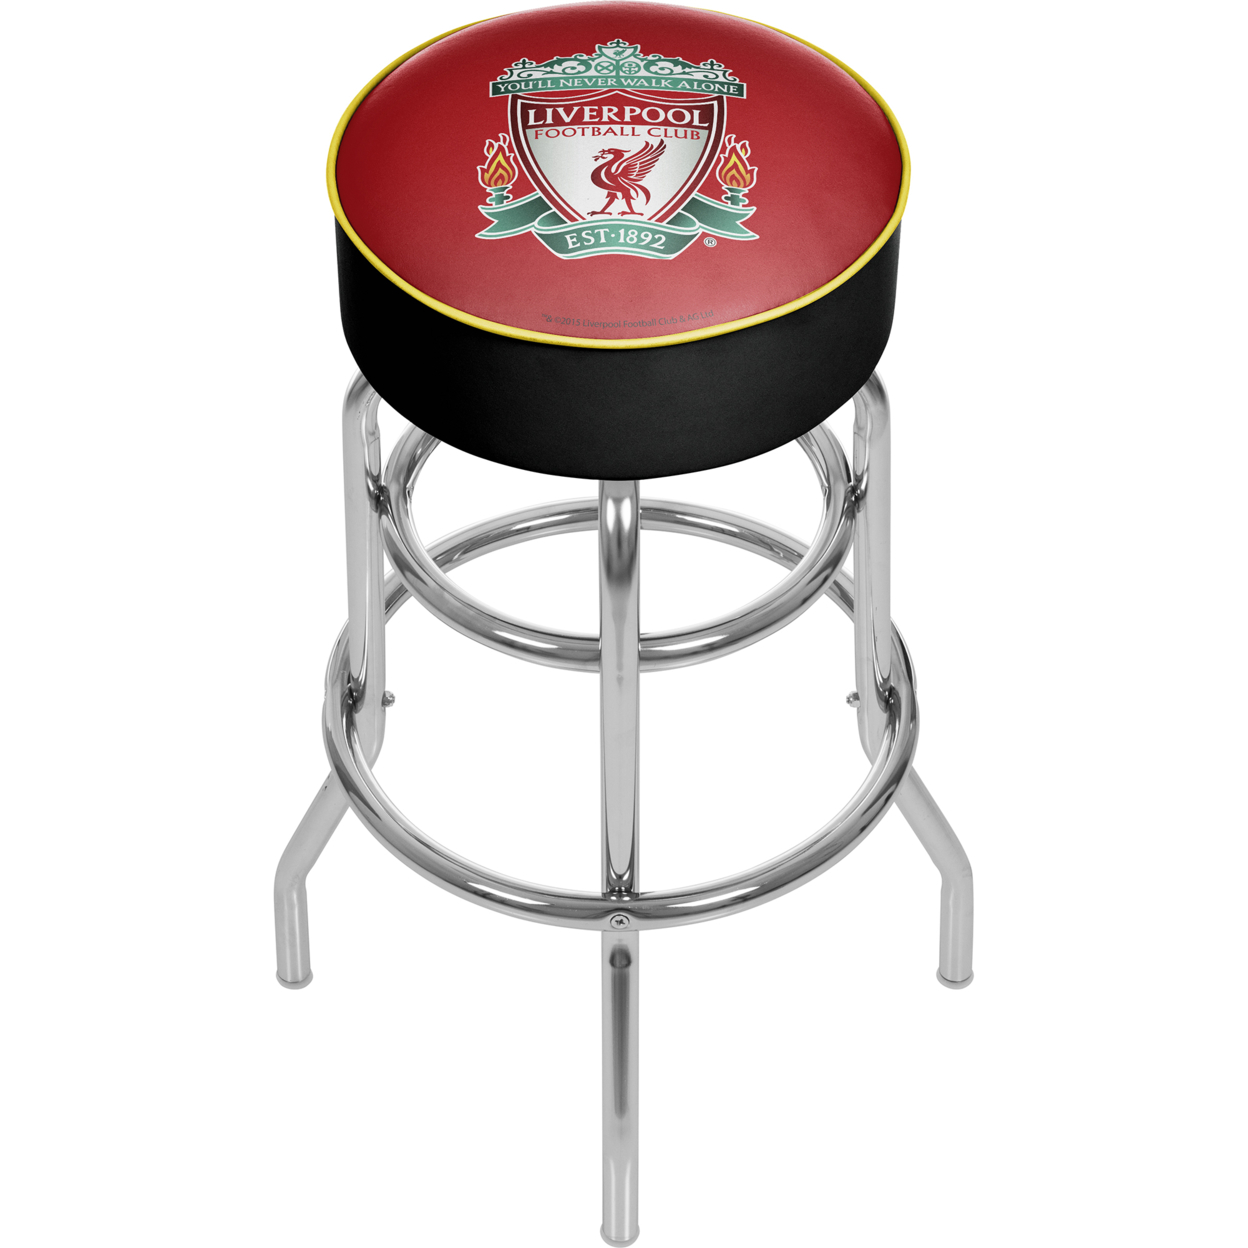 Premier League Liverpool Football Club Chrome Padded Swivel Bar Stool 30 Inches High quiksilver шорты классические every cargo short dusty olive 1144675